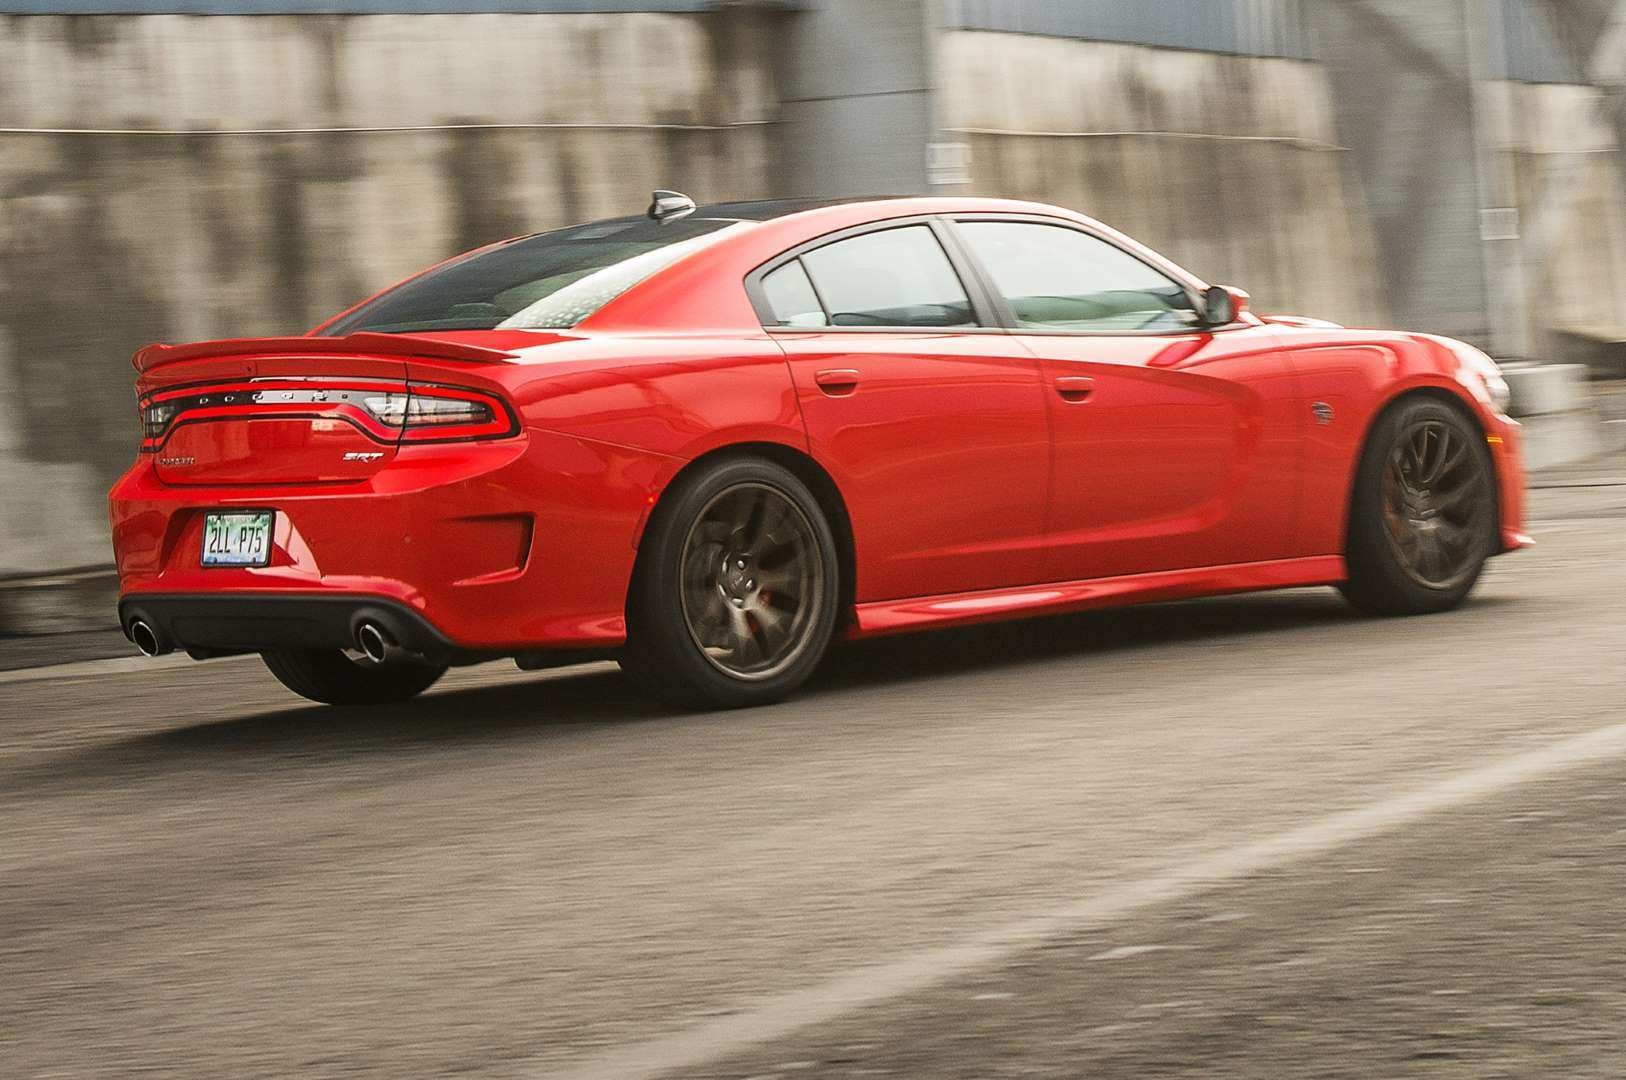 33 The Best 2020 Dodge Charger Srt8 Hellcat Images